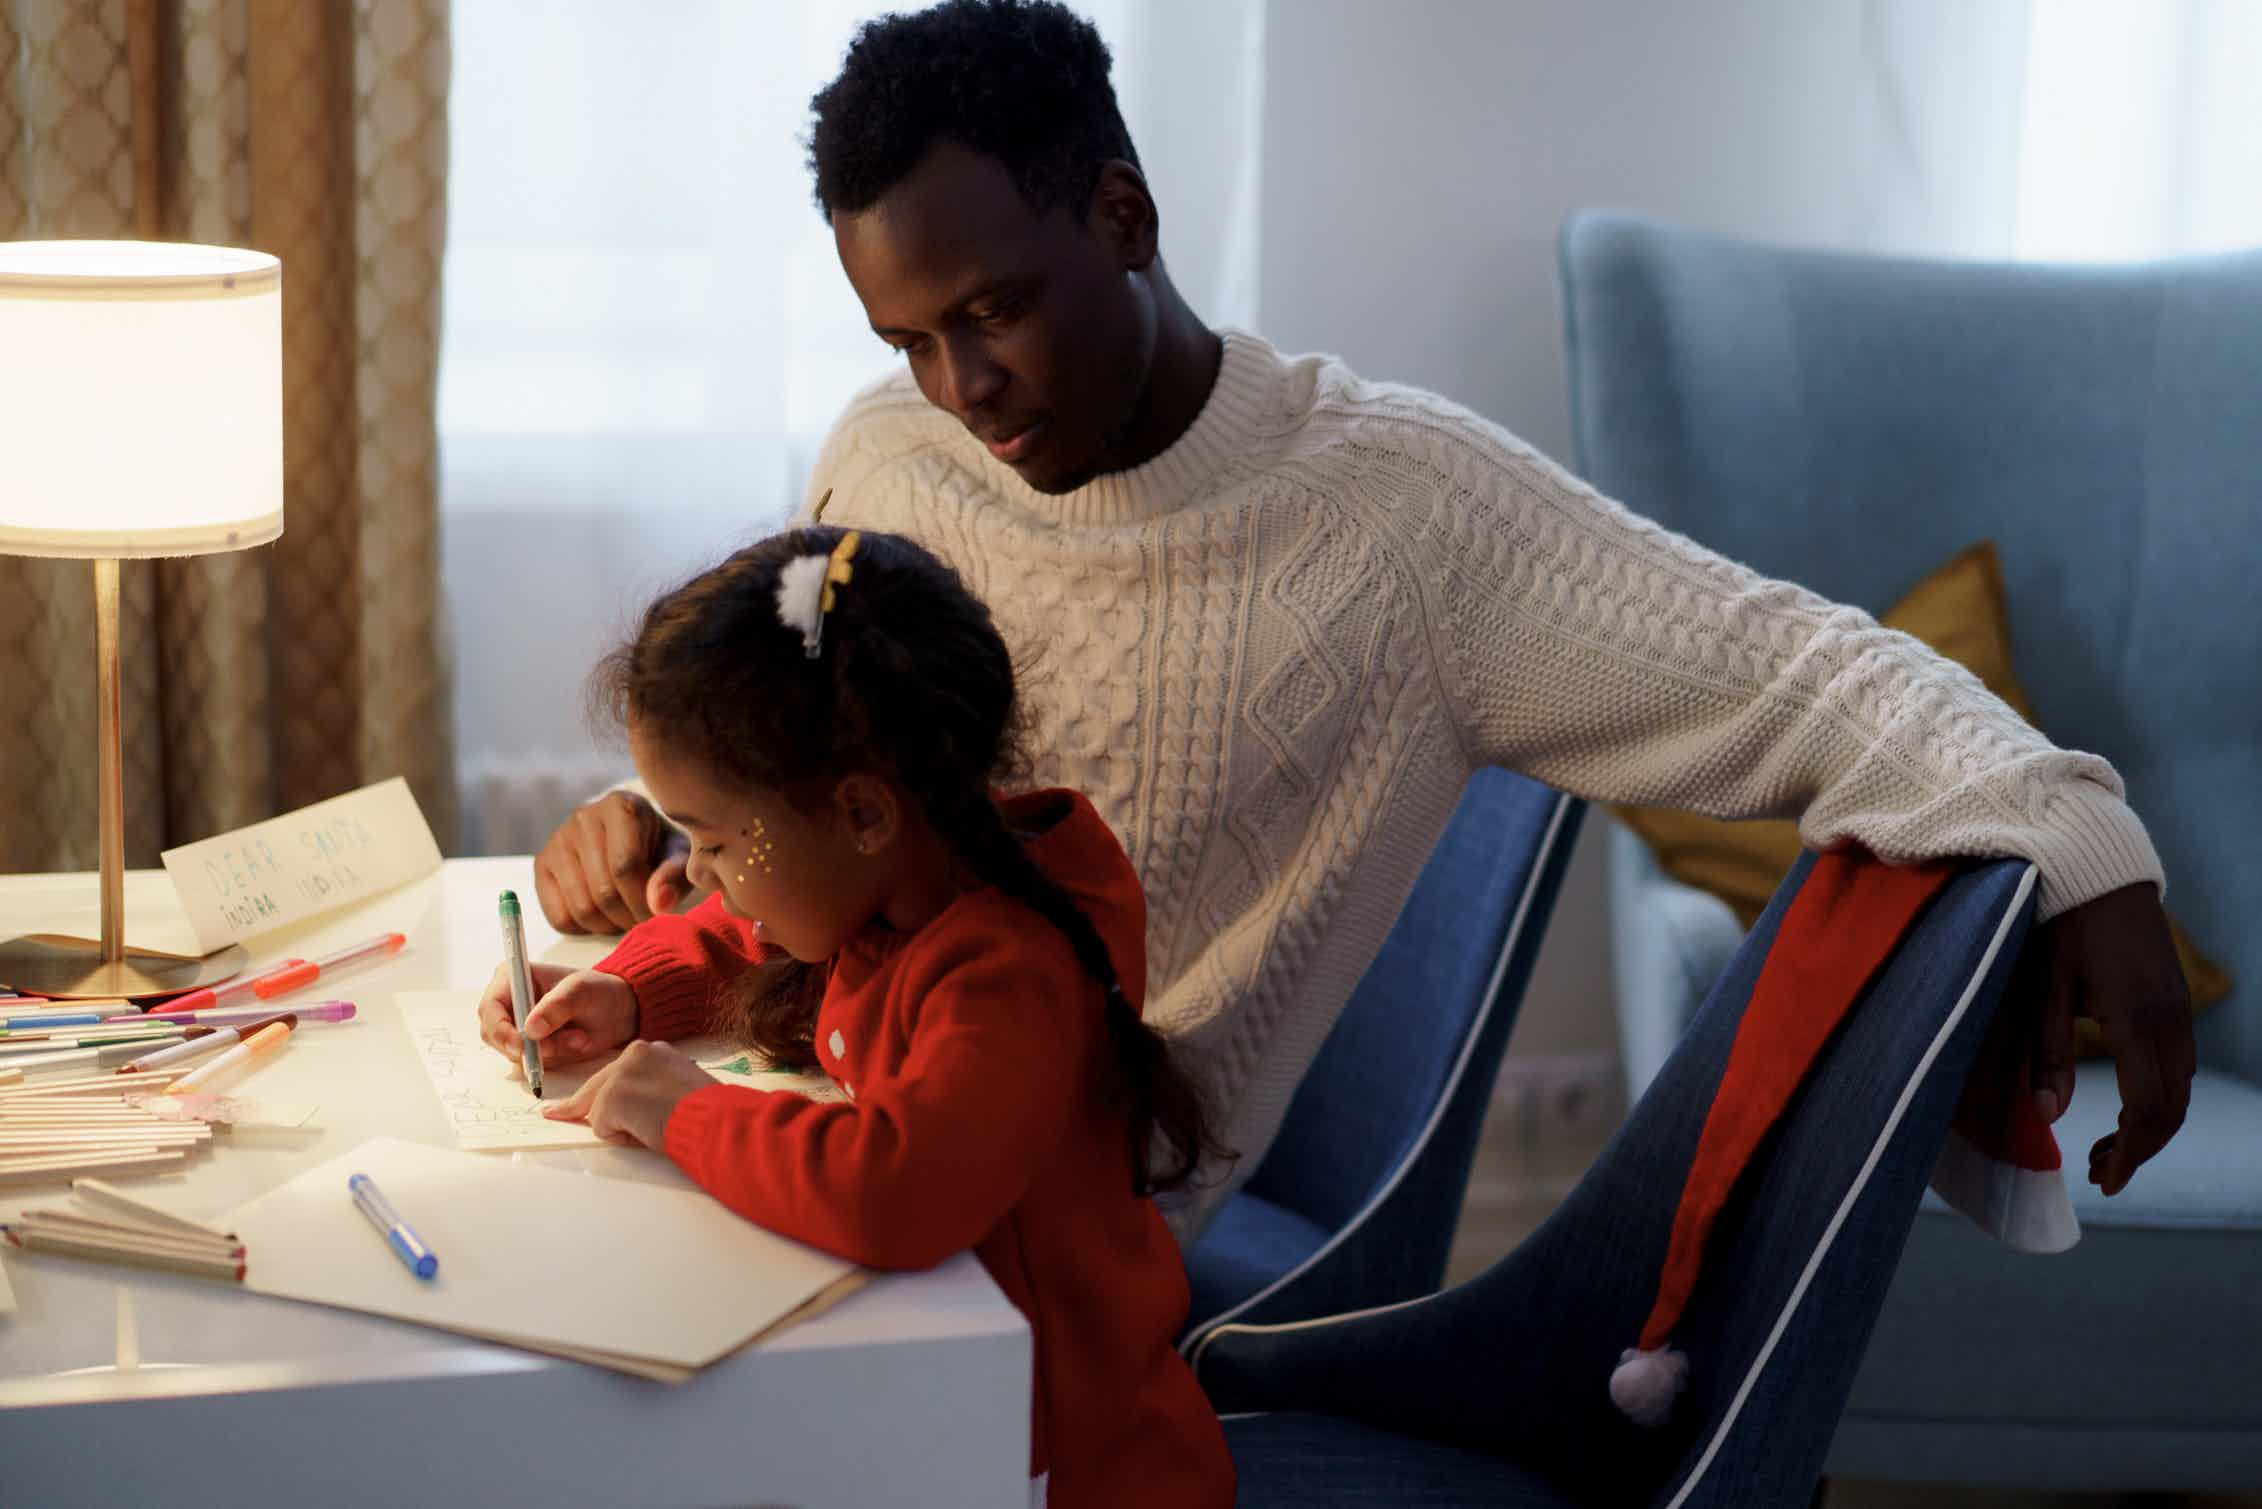 A father sits wtih daughter who is writing at a desk.